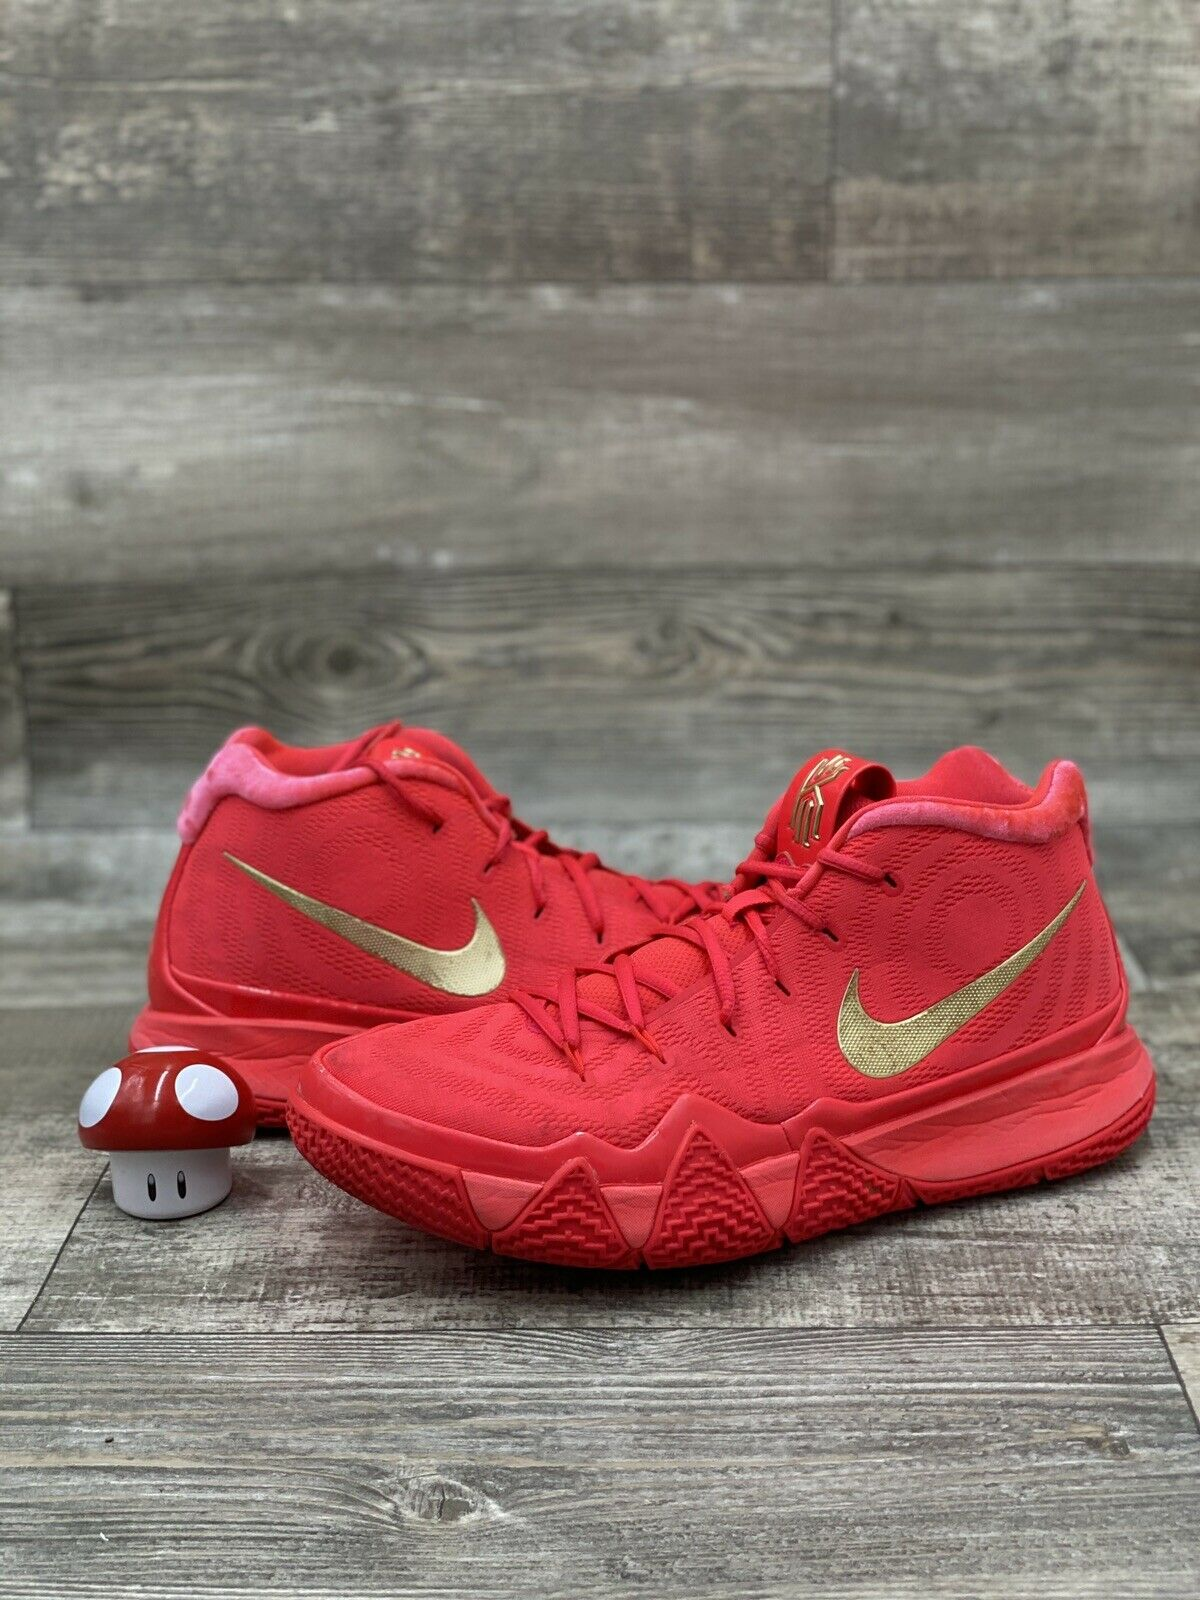 red carpet kyrie 4s